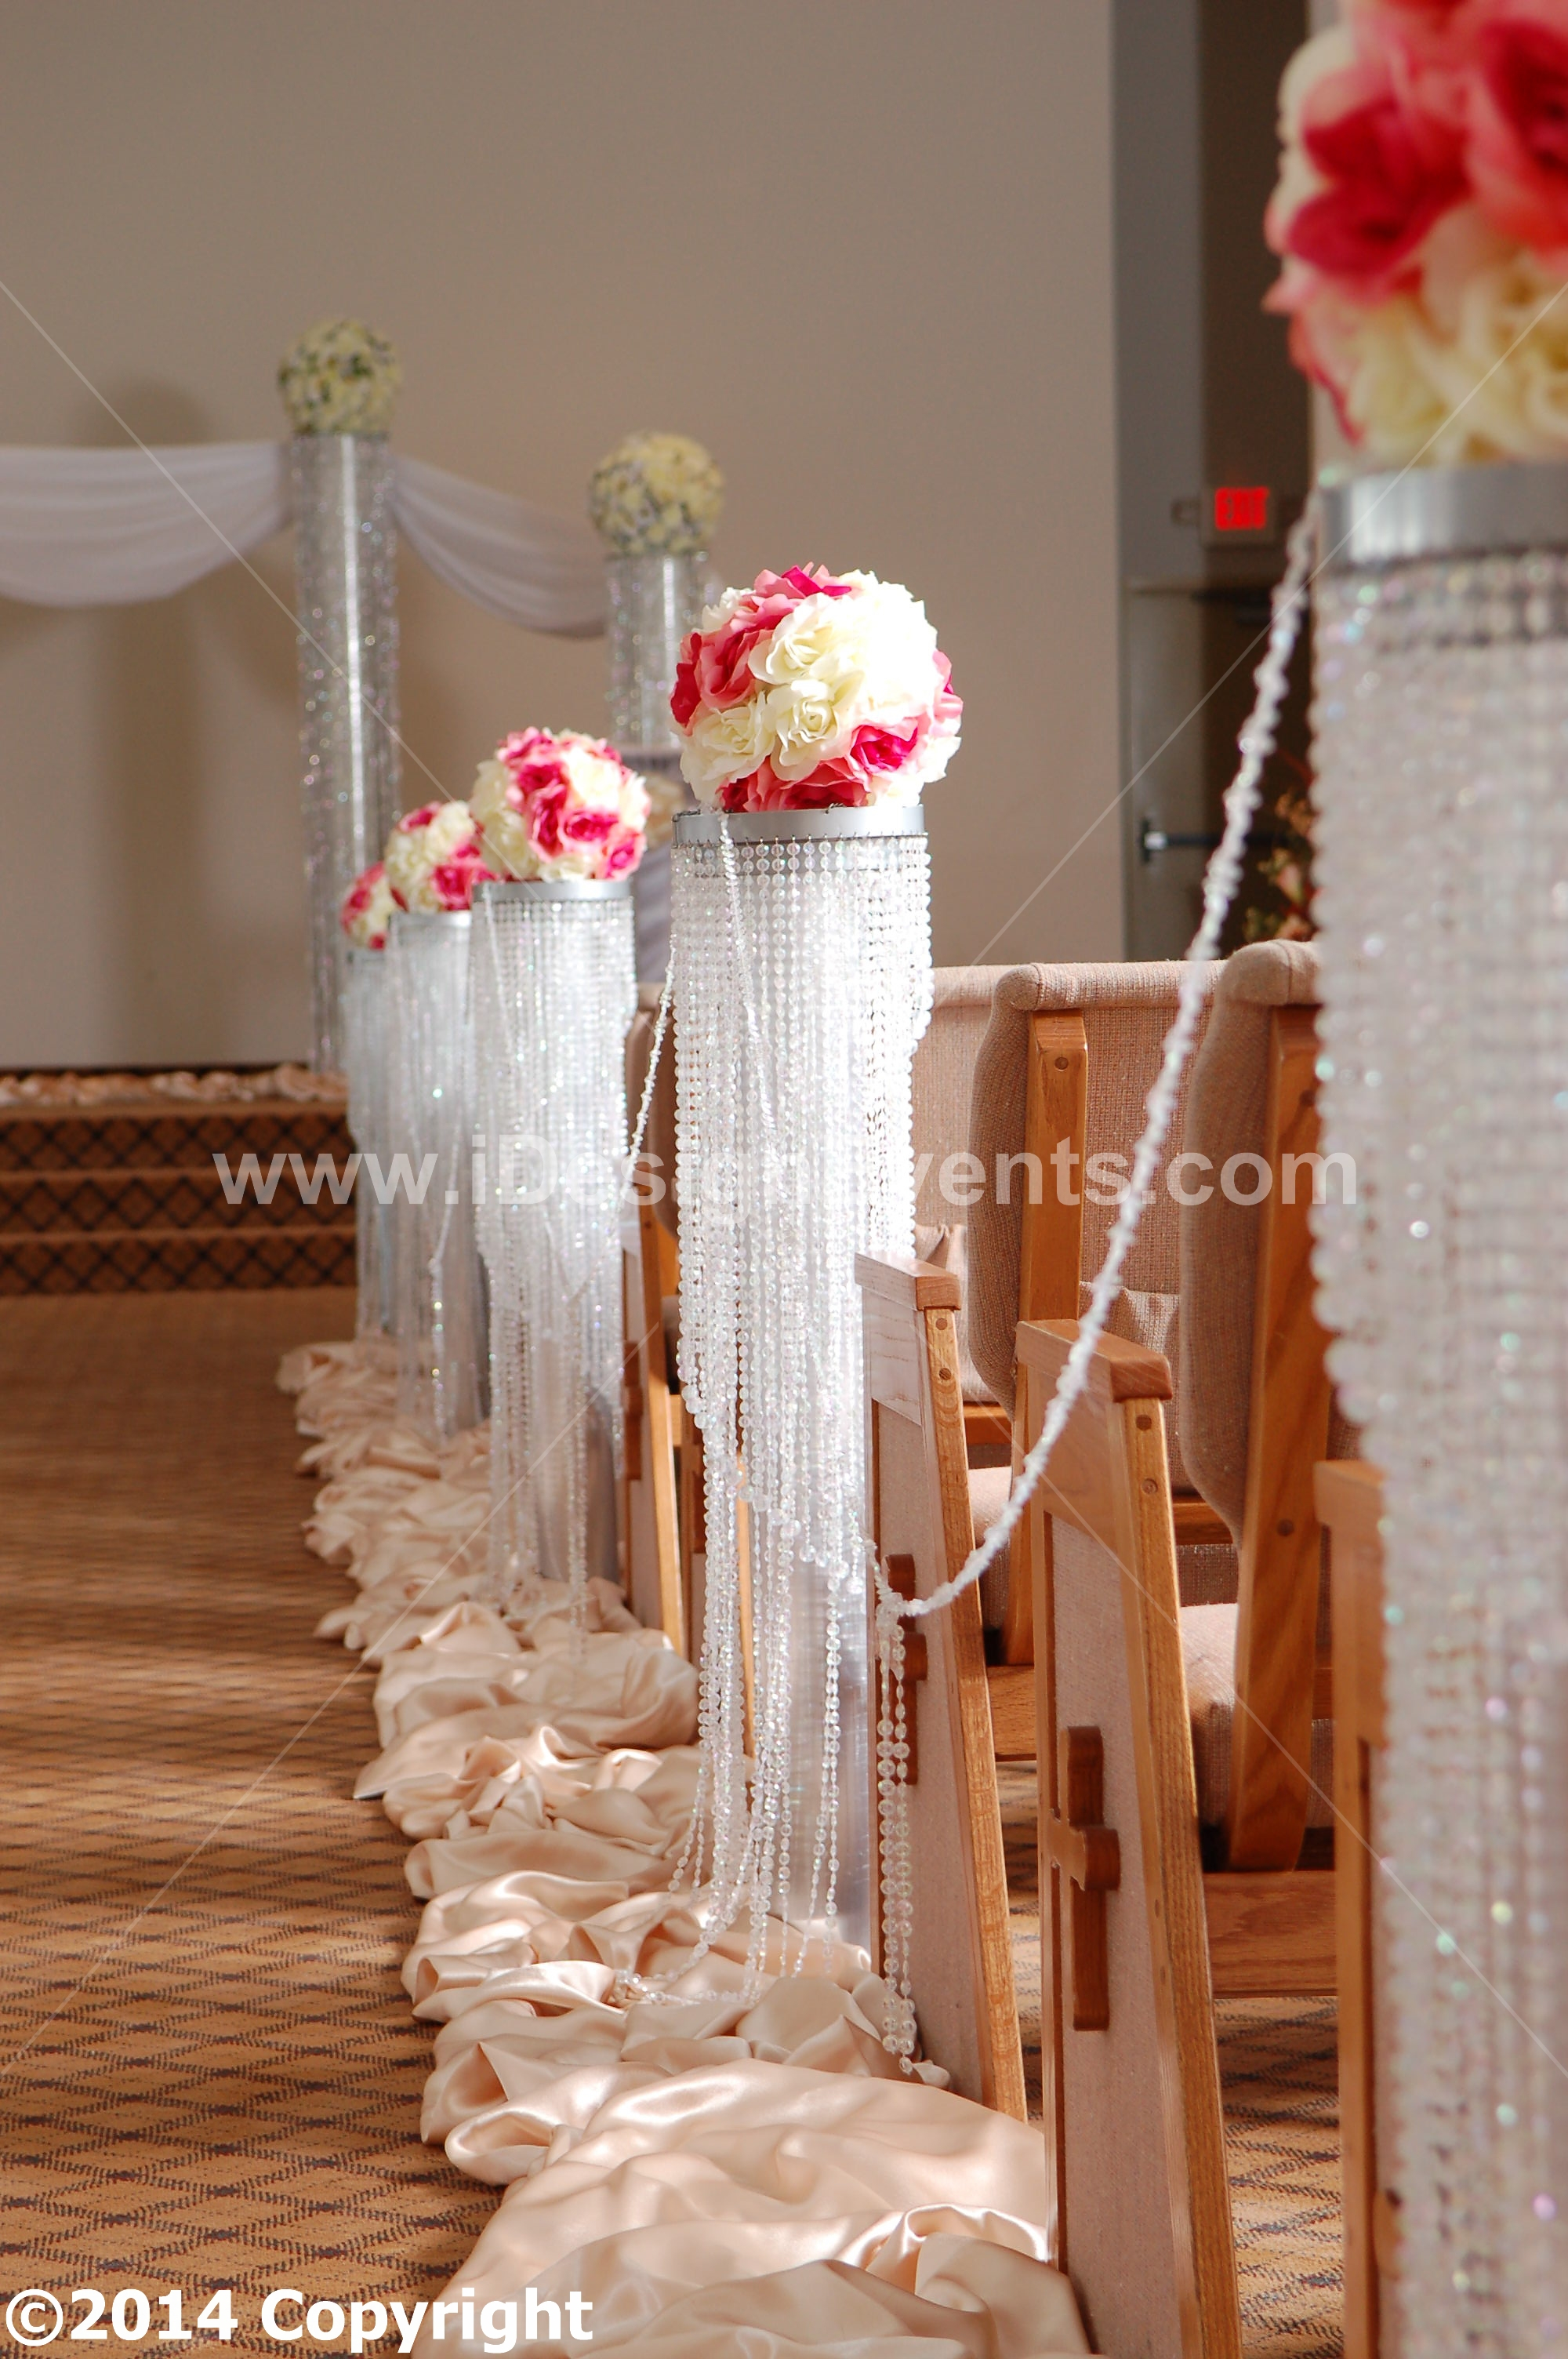 3 FEET IRIDE RD SCENT WEDDING AISLE DECORATION CRYSTAL PILLARS PEDESTALS COLUMNS